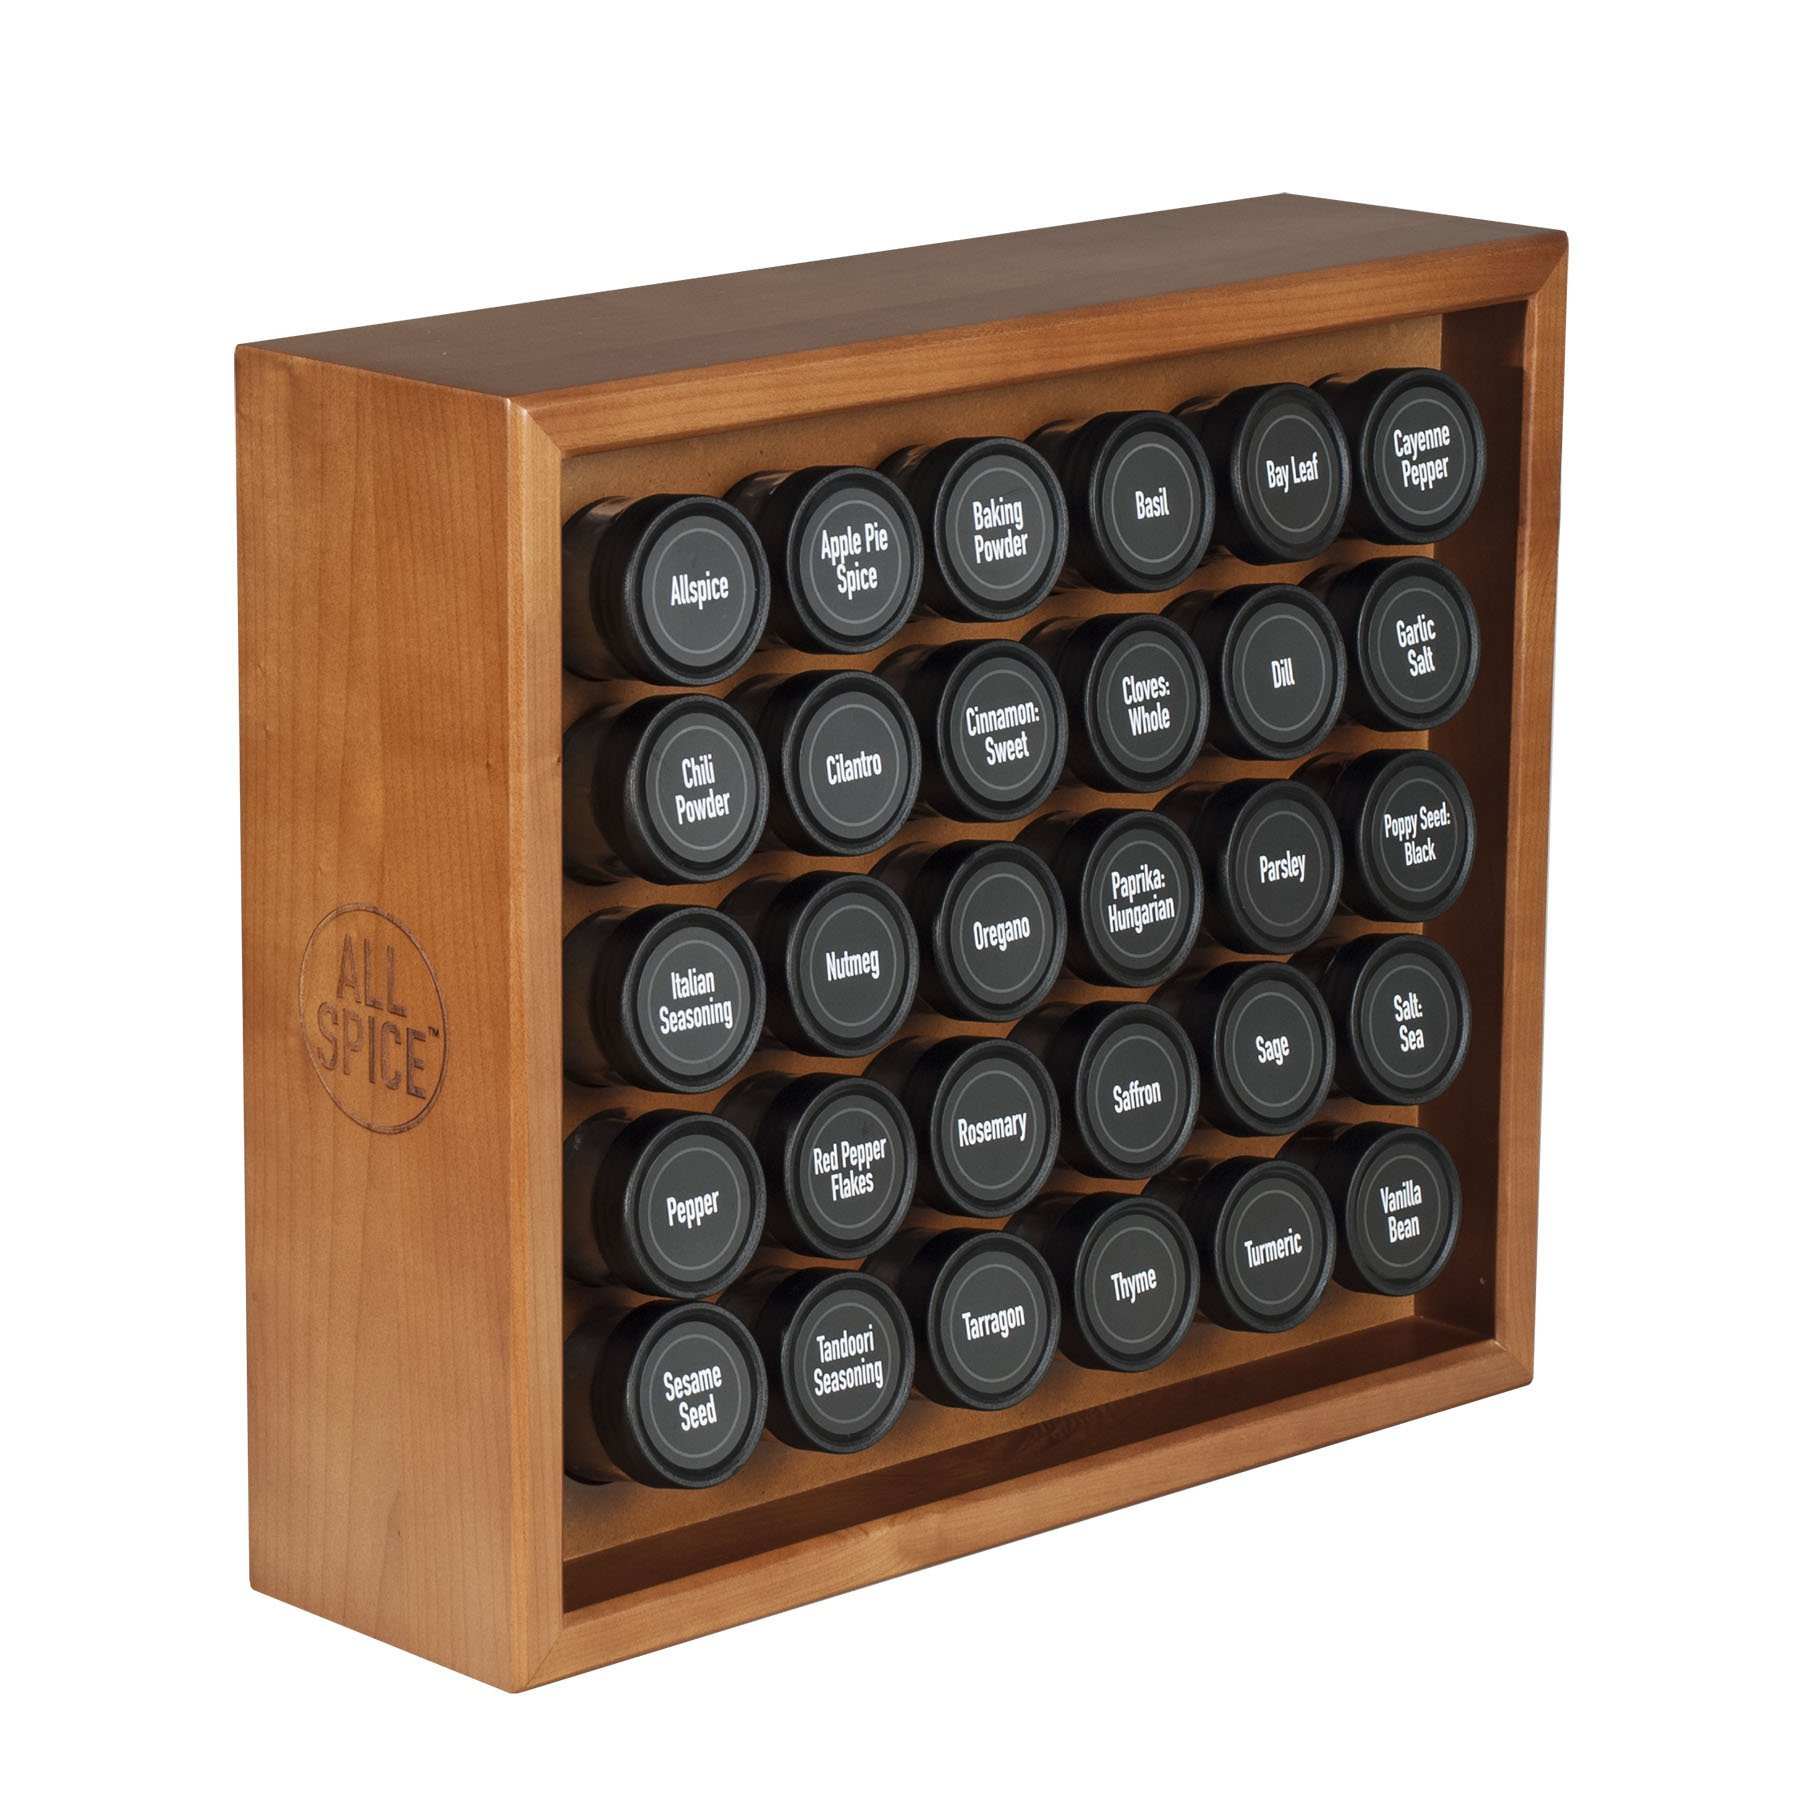 AllSpice Wooden Spice Rack, Includes 30 4oz Jars- Cherry Stain by AllSpice